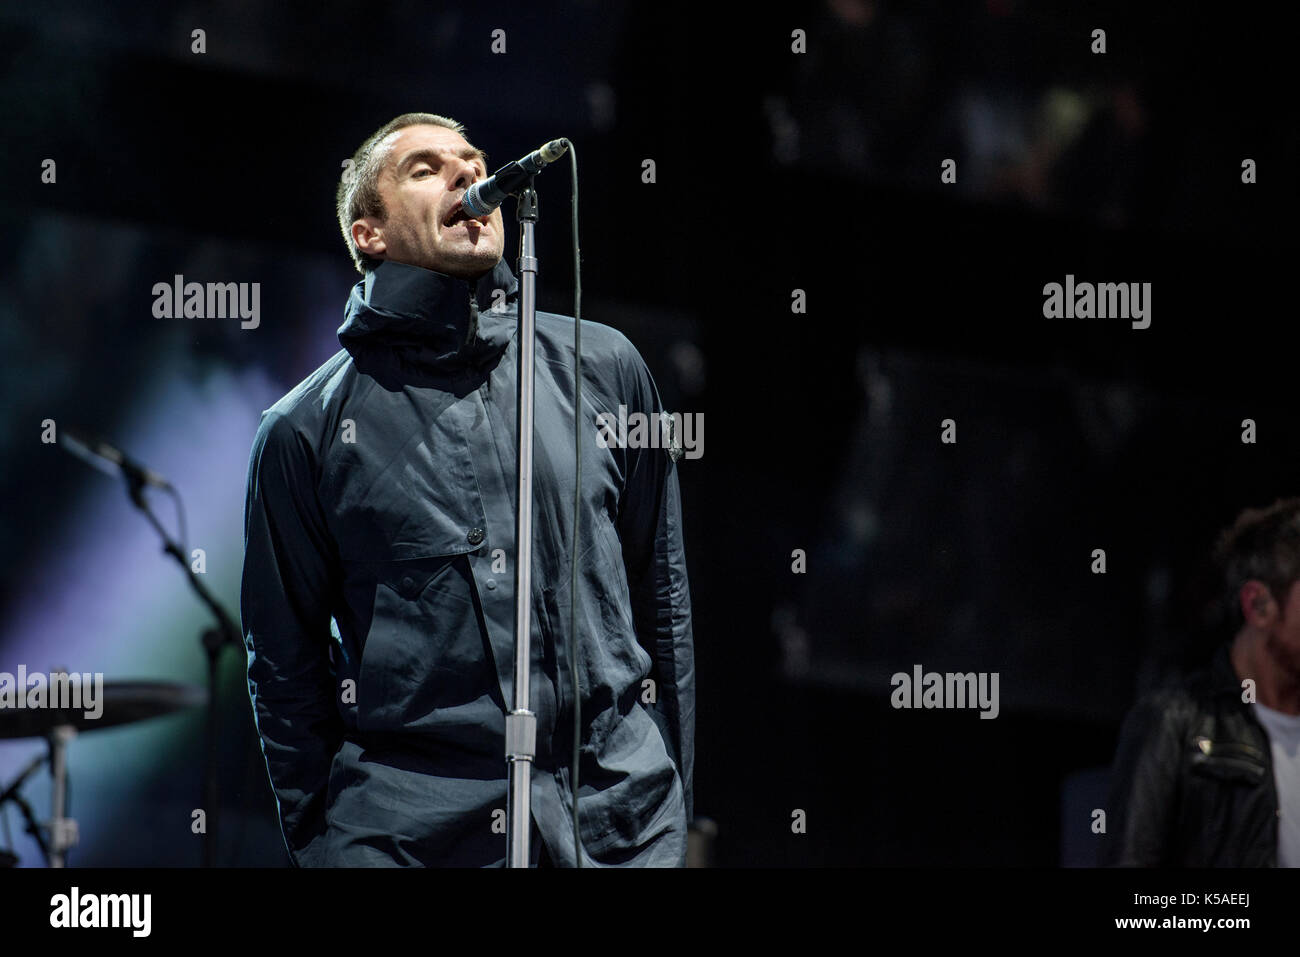 Leeds, UK. 25thAugust 2017.  Liam Gallagher performs on the main stage at Leeds Festival 2017, Bramham Park, Leeds 25/08/2017 © Gary Mather/Alamy Live - Stock Image